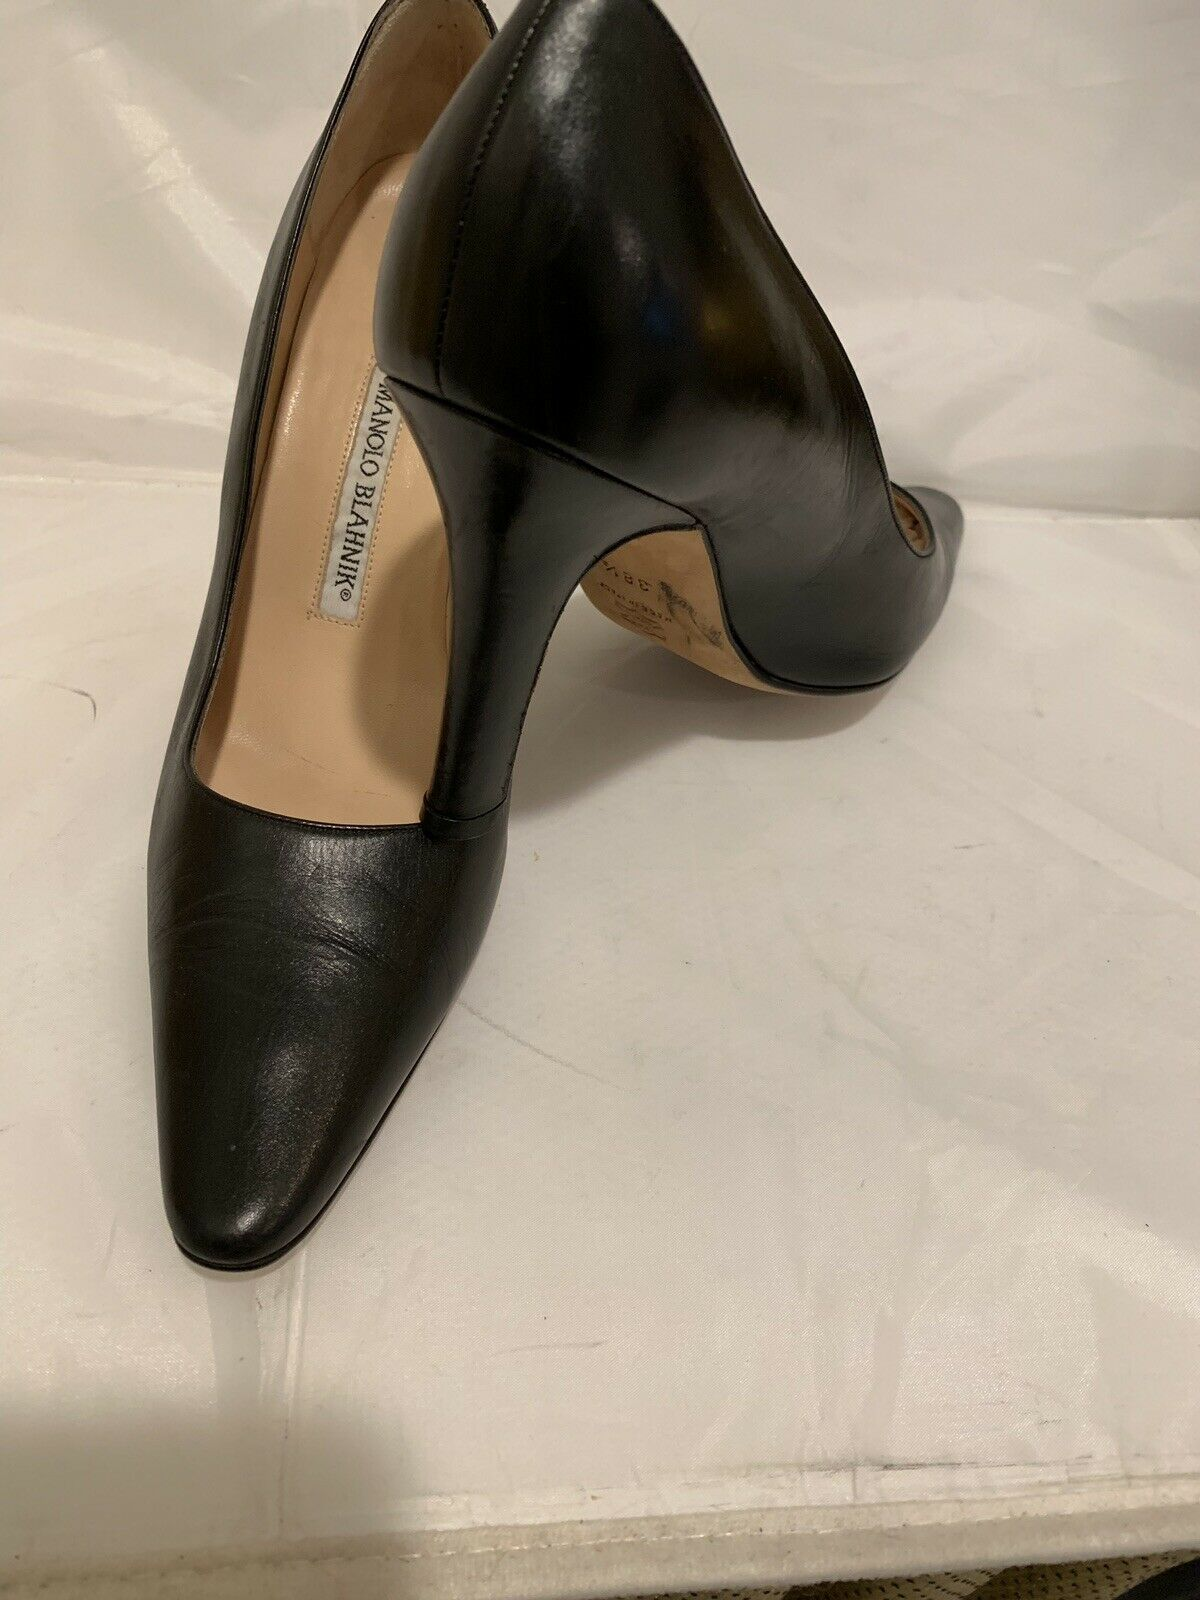 MANOLO BLAHNIK BLACK LEATHER SHOES ITALY SZ 38.5 EXCELLENT WORN ONCE  750.00